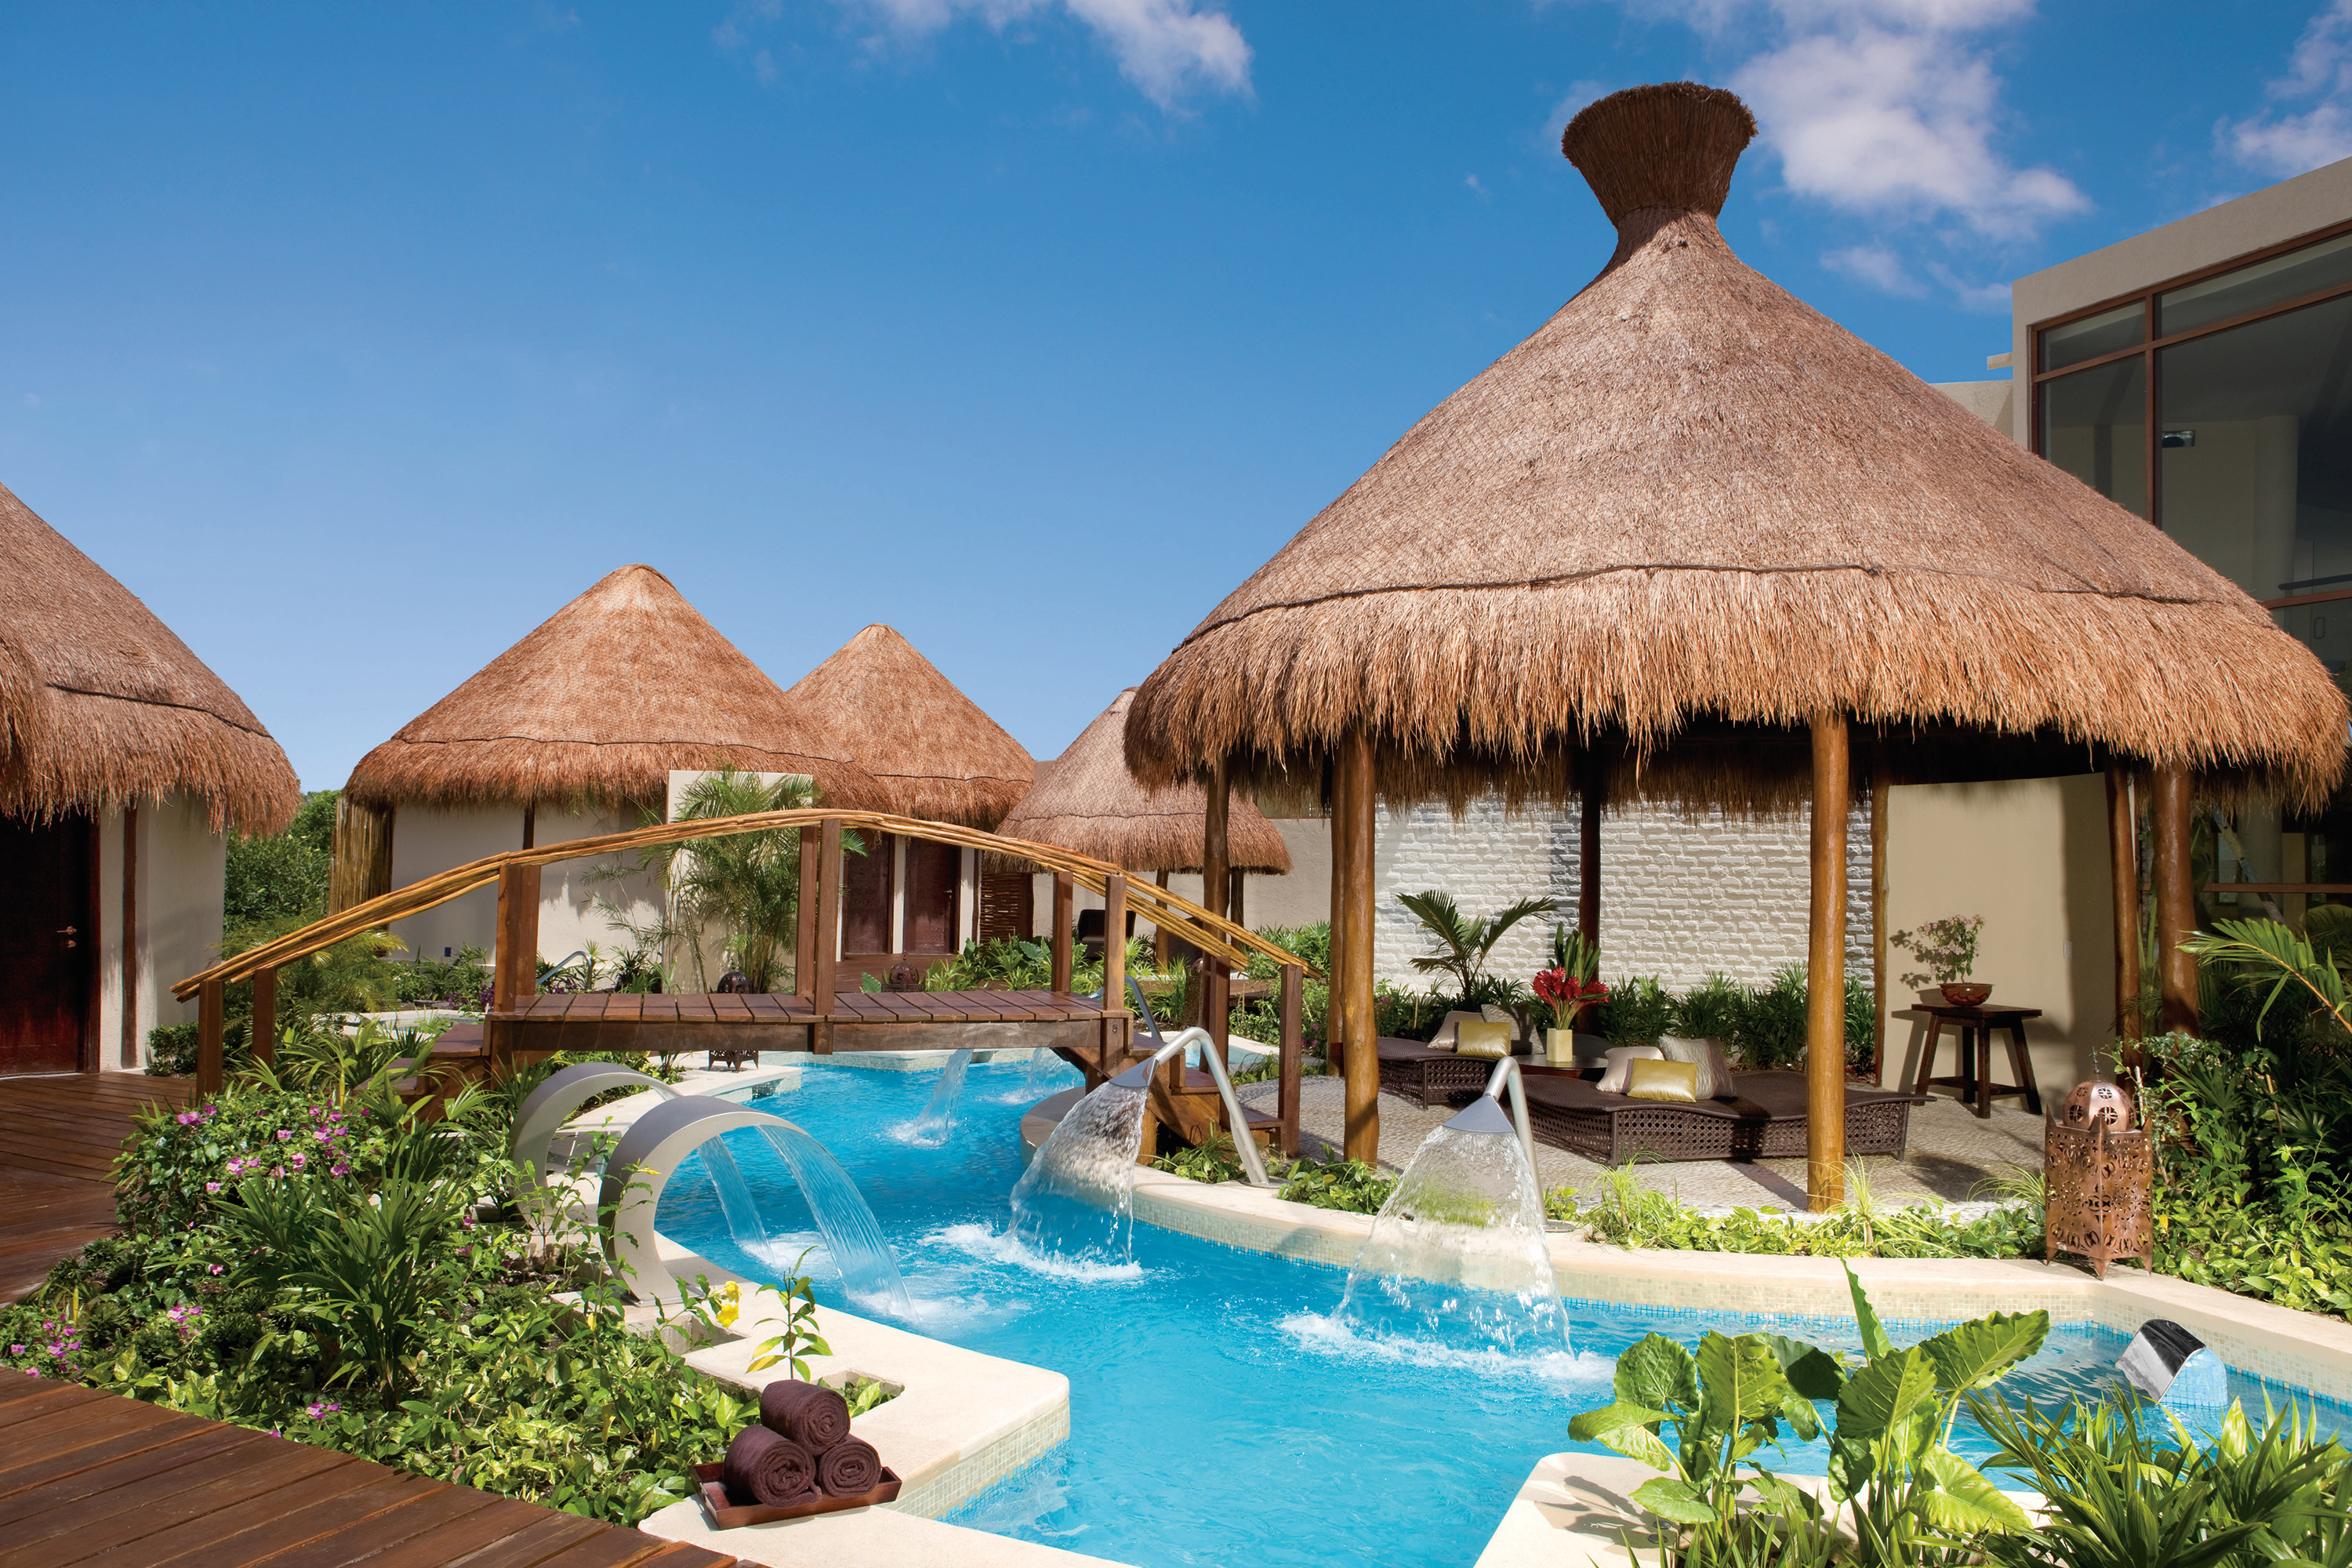 Travel Agency All-Inclusive Resort Dream